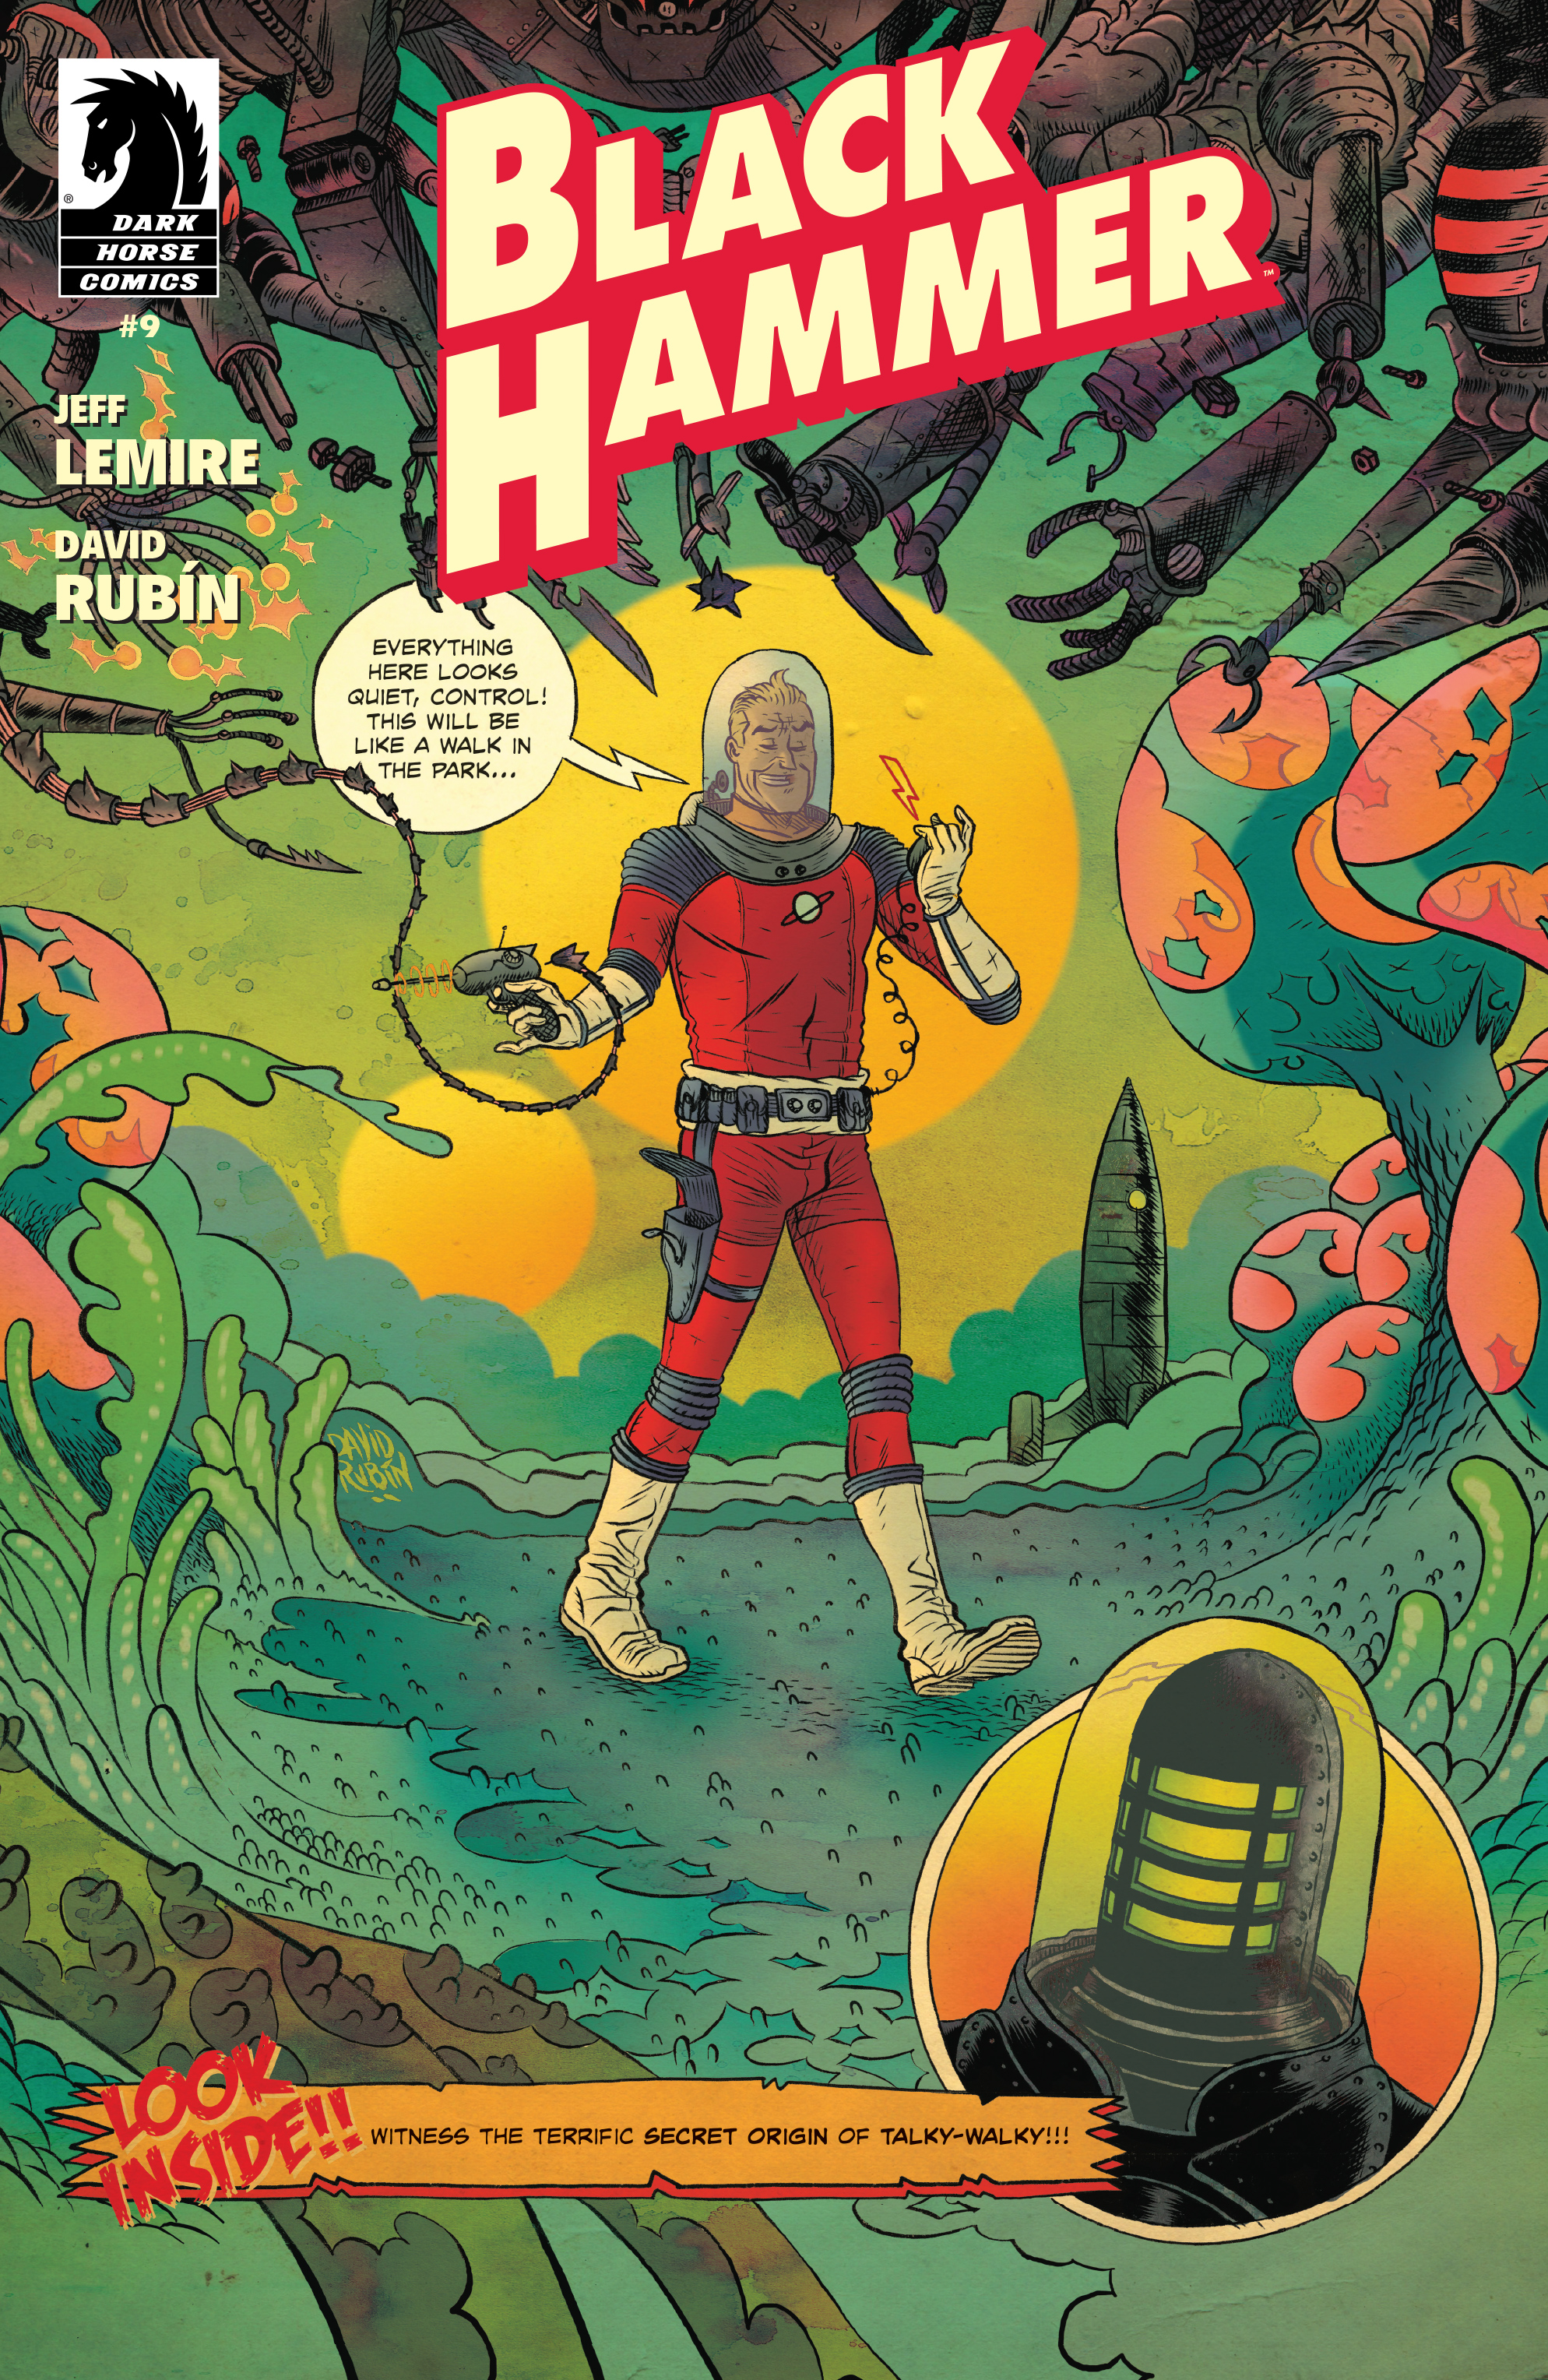 Read online Black Hammer comic -  Issue #9 - 1